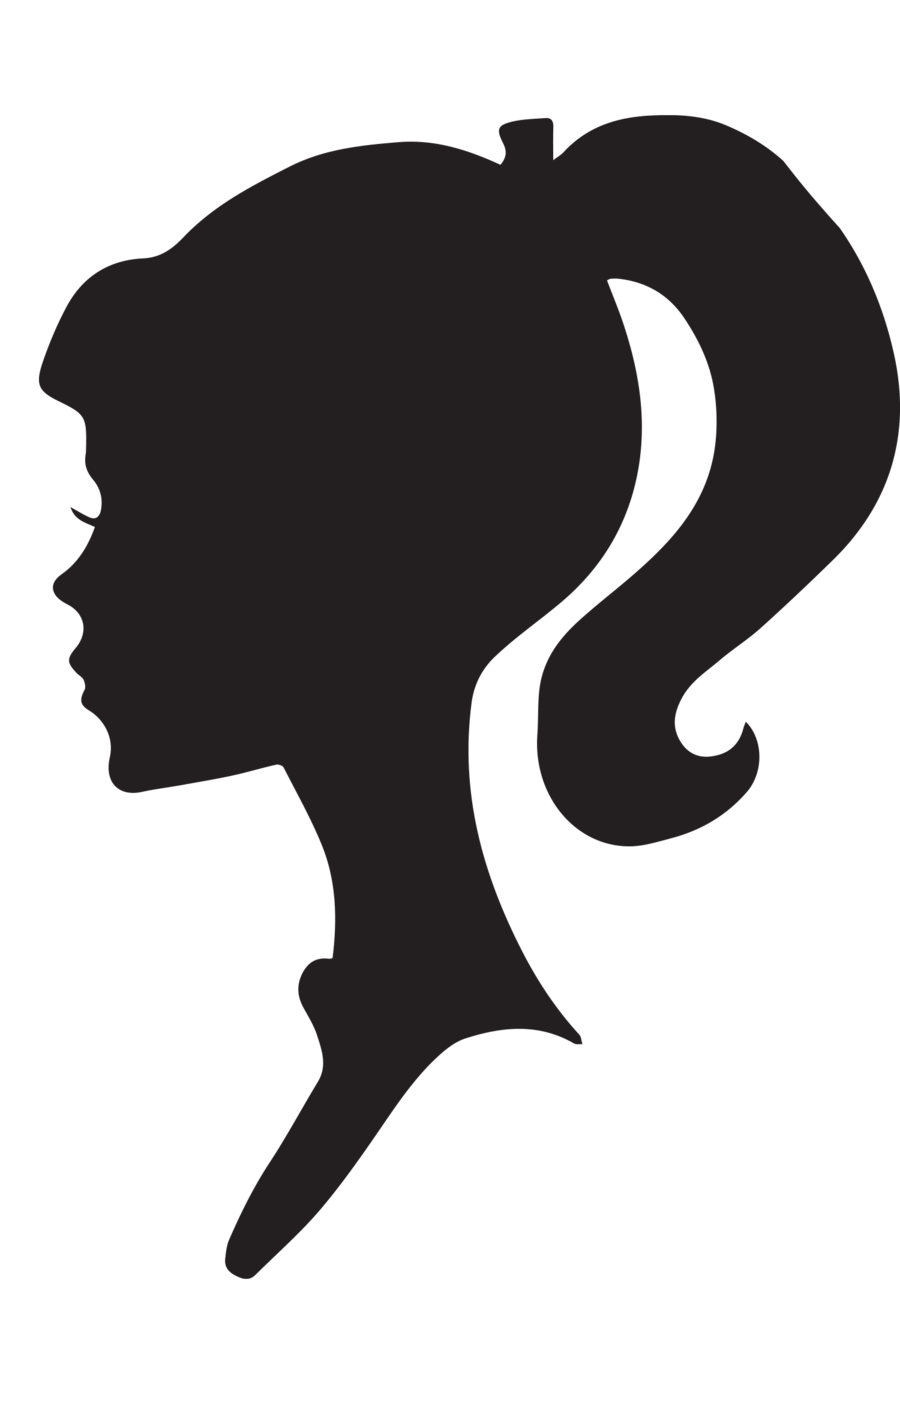 Barbie silhouette png. Head at getdrawings com